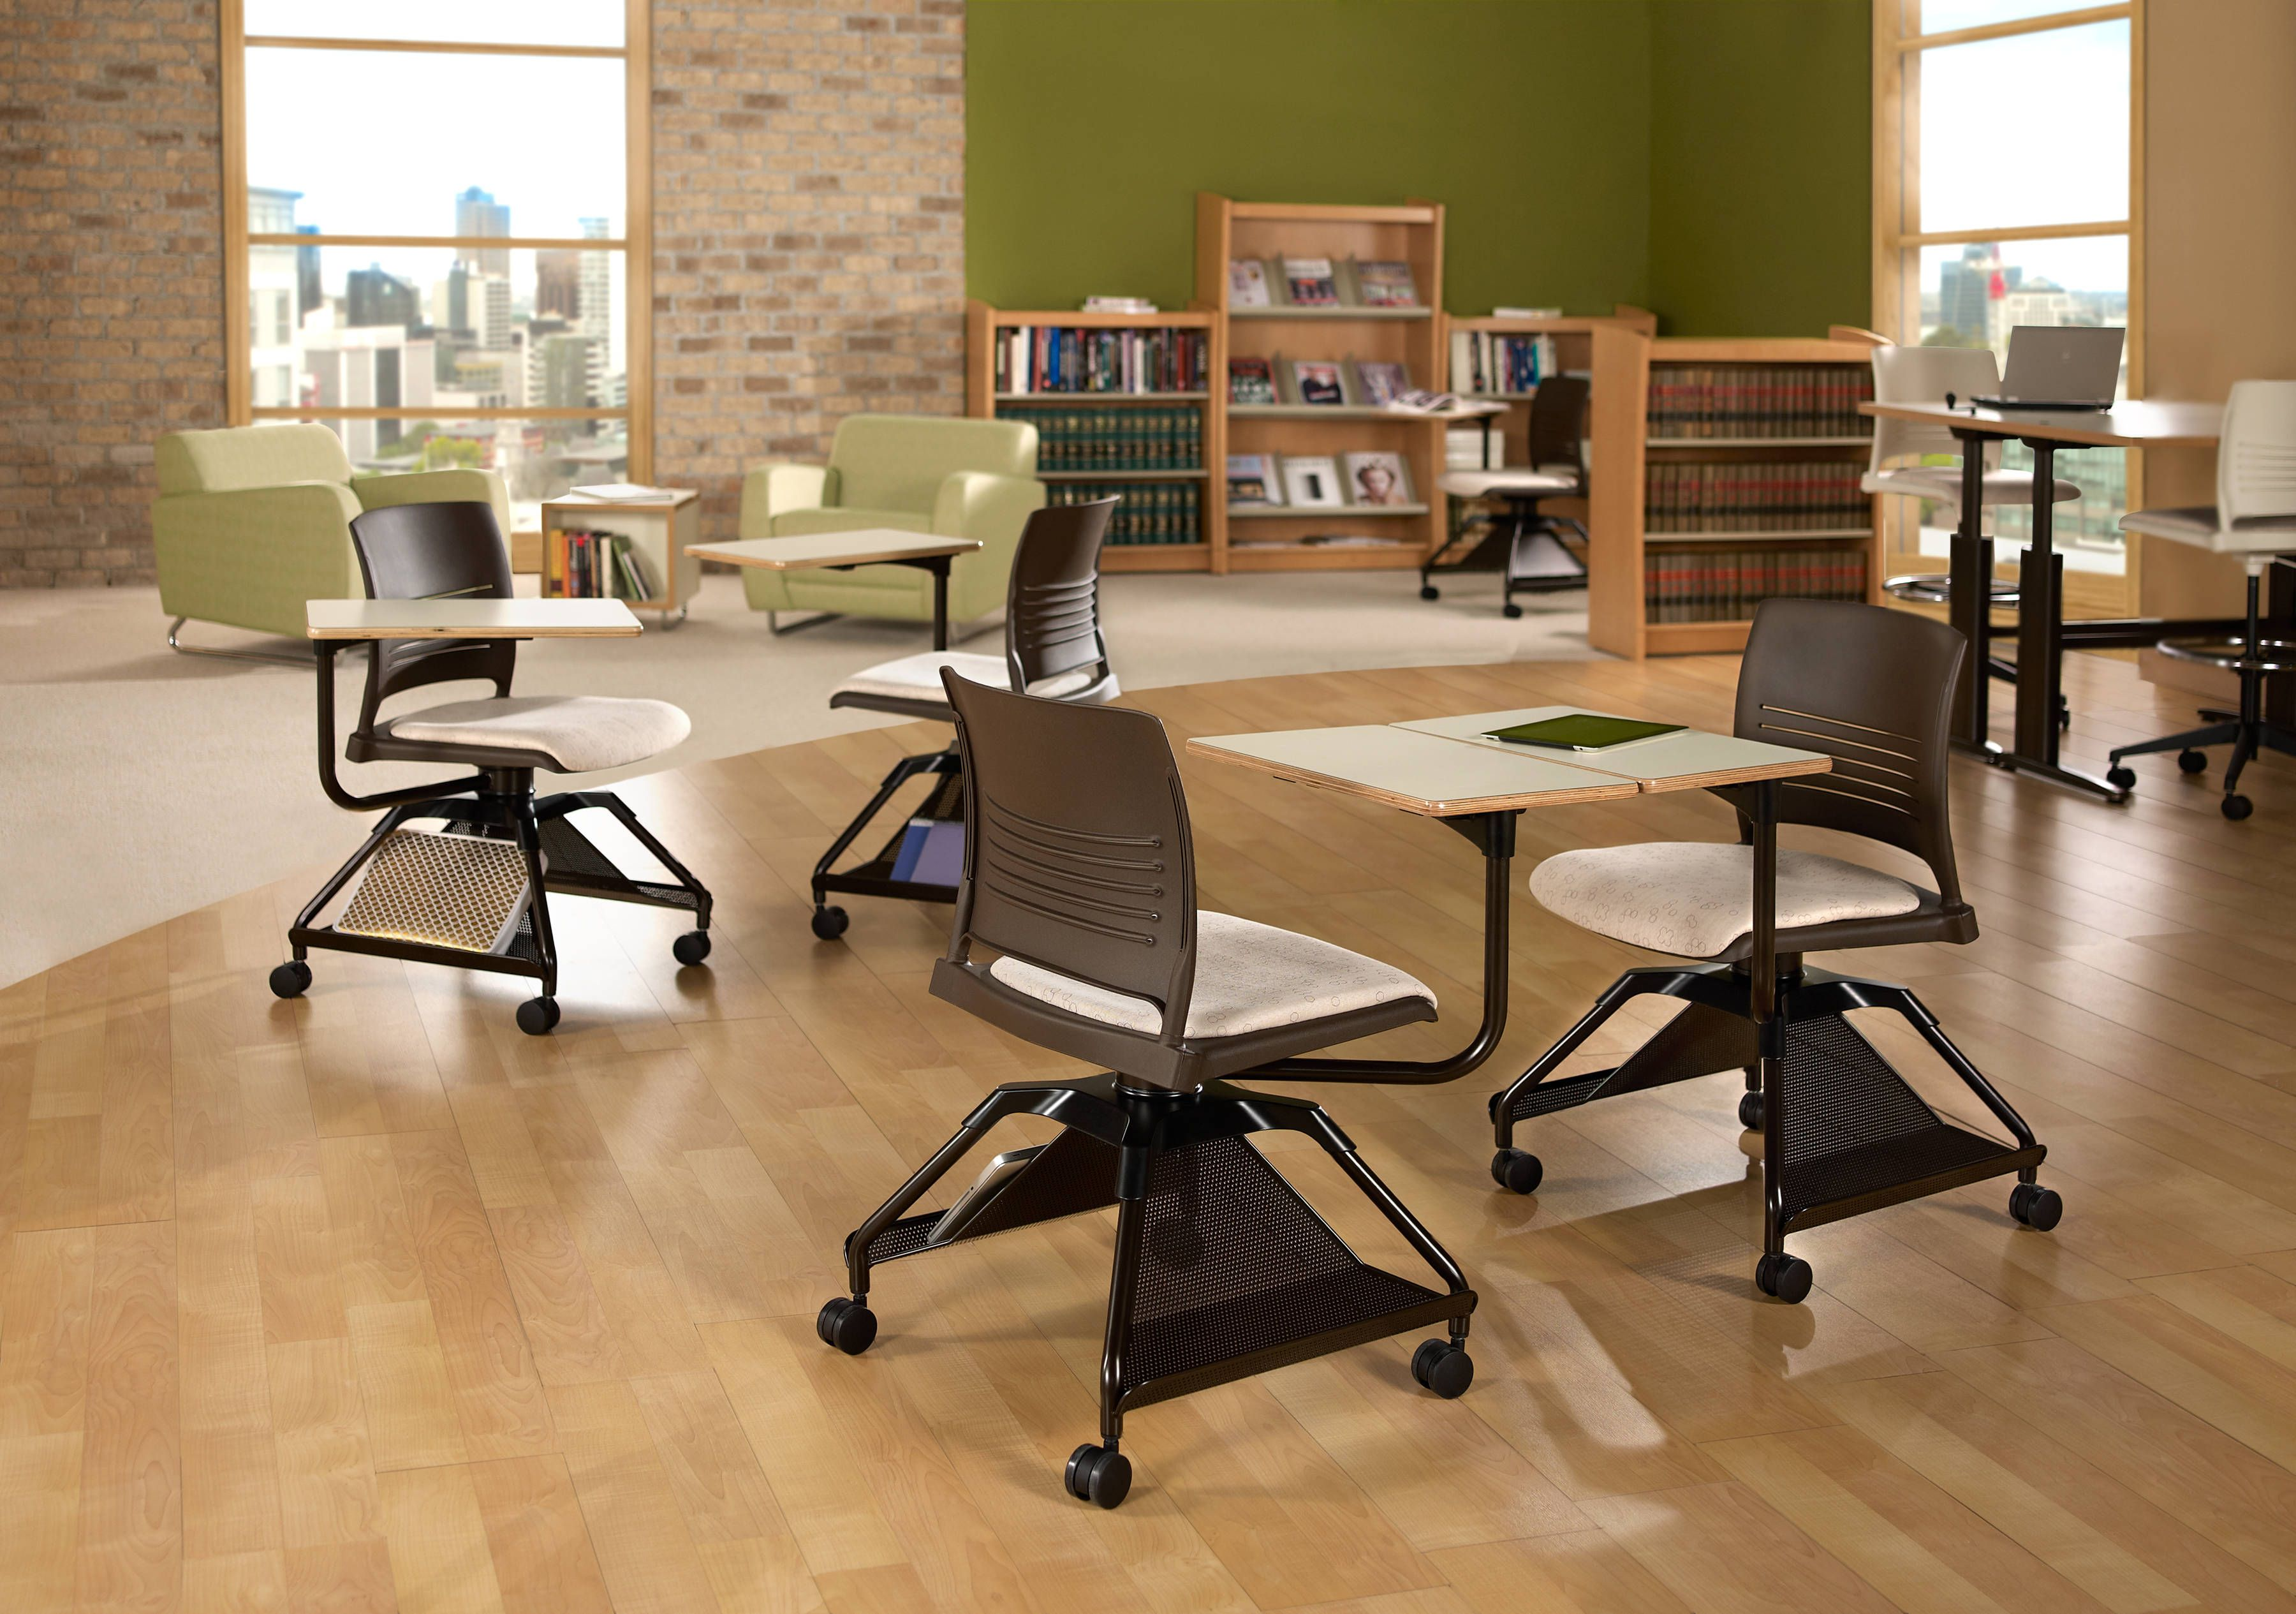 Ki Is The 1 Supplier Of Educational Furniture Solutions Here Is